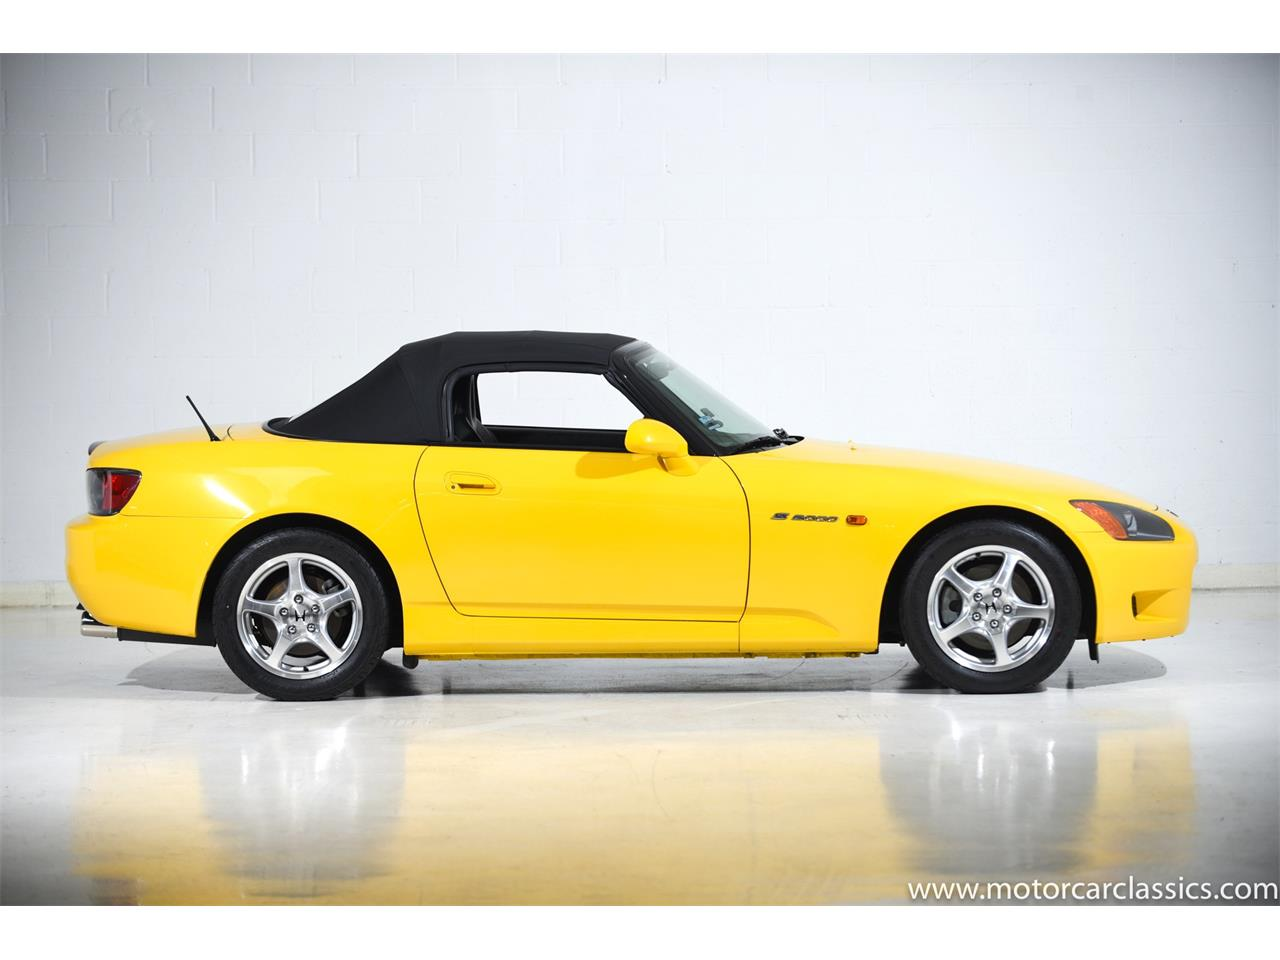 2001 Honda S2000 (CC-1242379) for sale in Farmingdale, New York